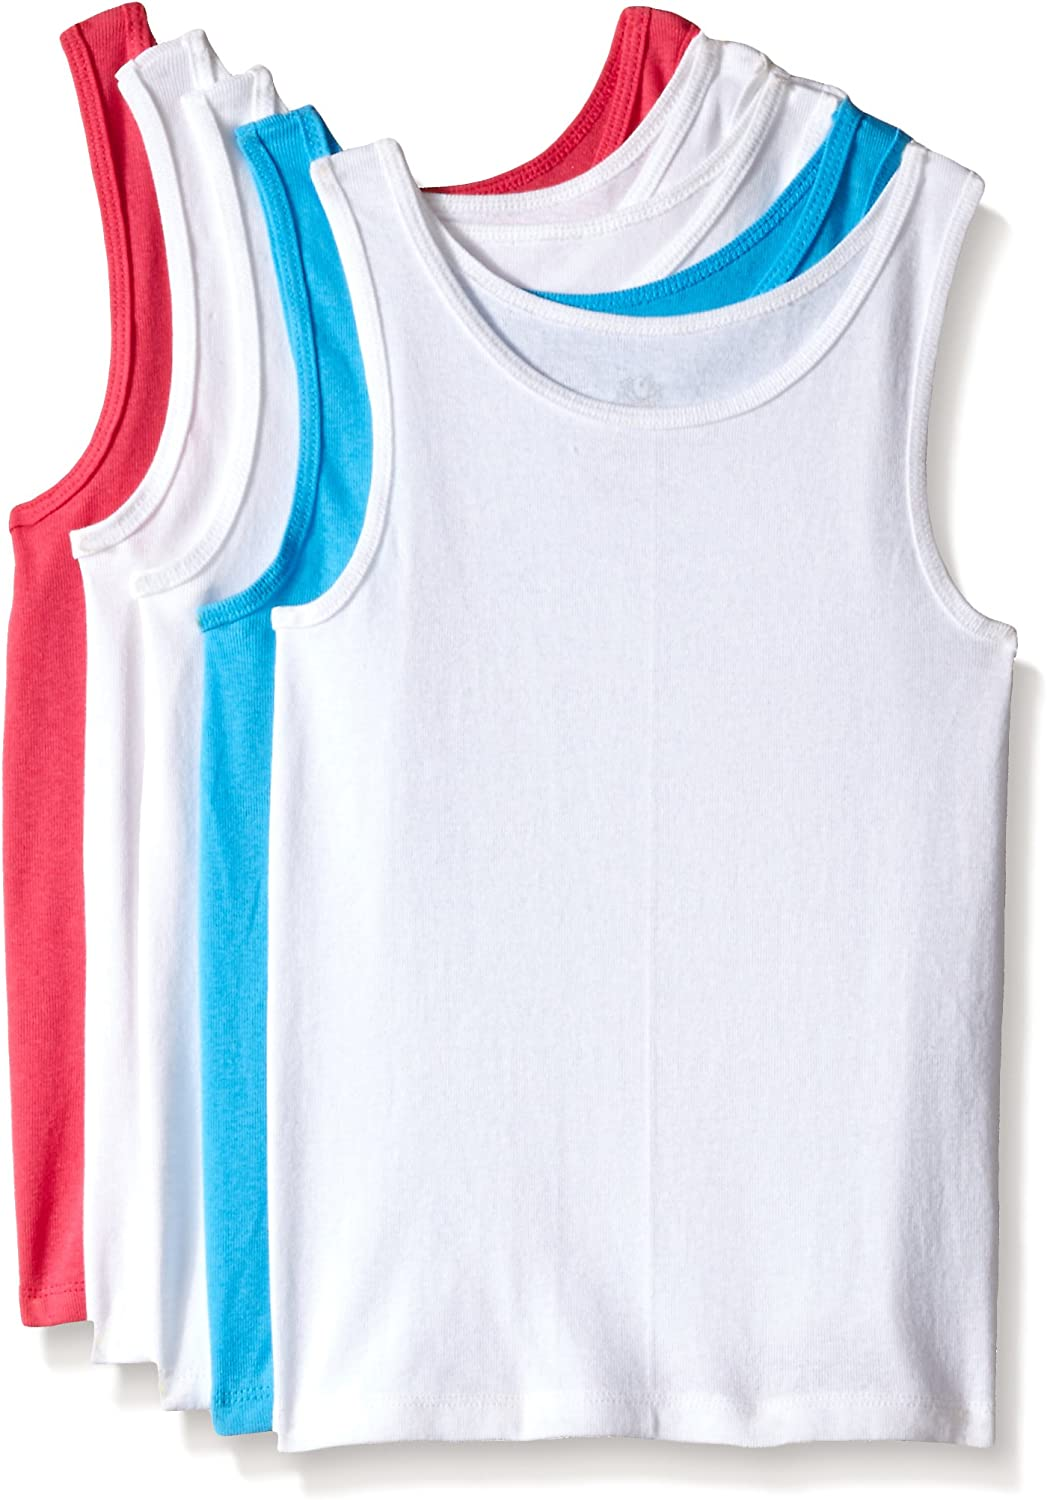 Pack of 5 Fruit of the Loom Big Girls Assorted Tank